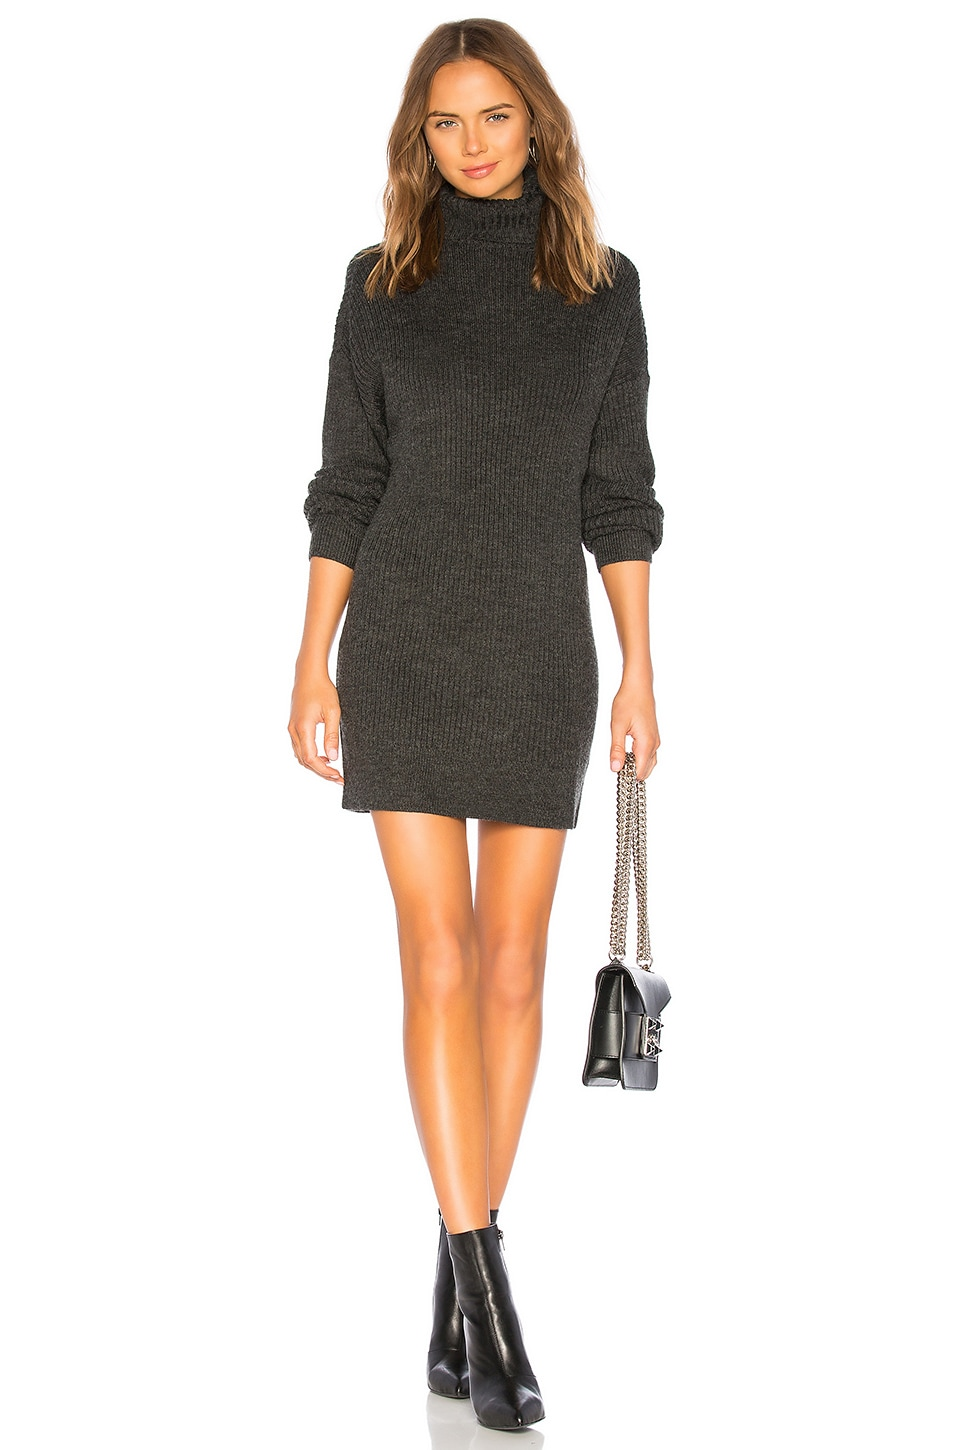 Lovers + Friends Helena Oversized Sweater in Charcoal